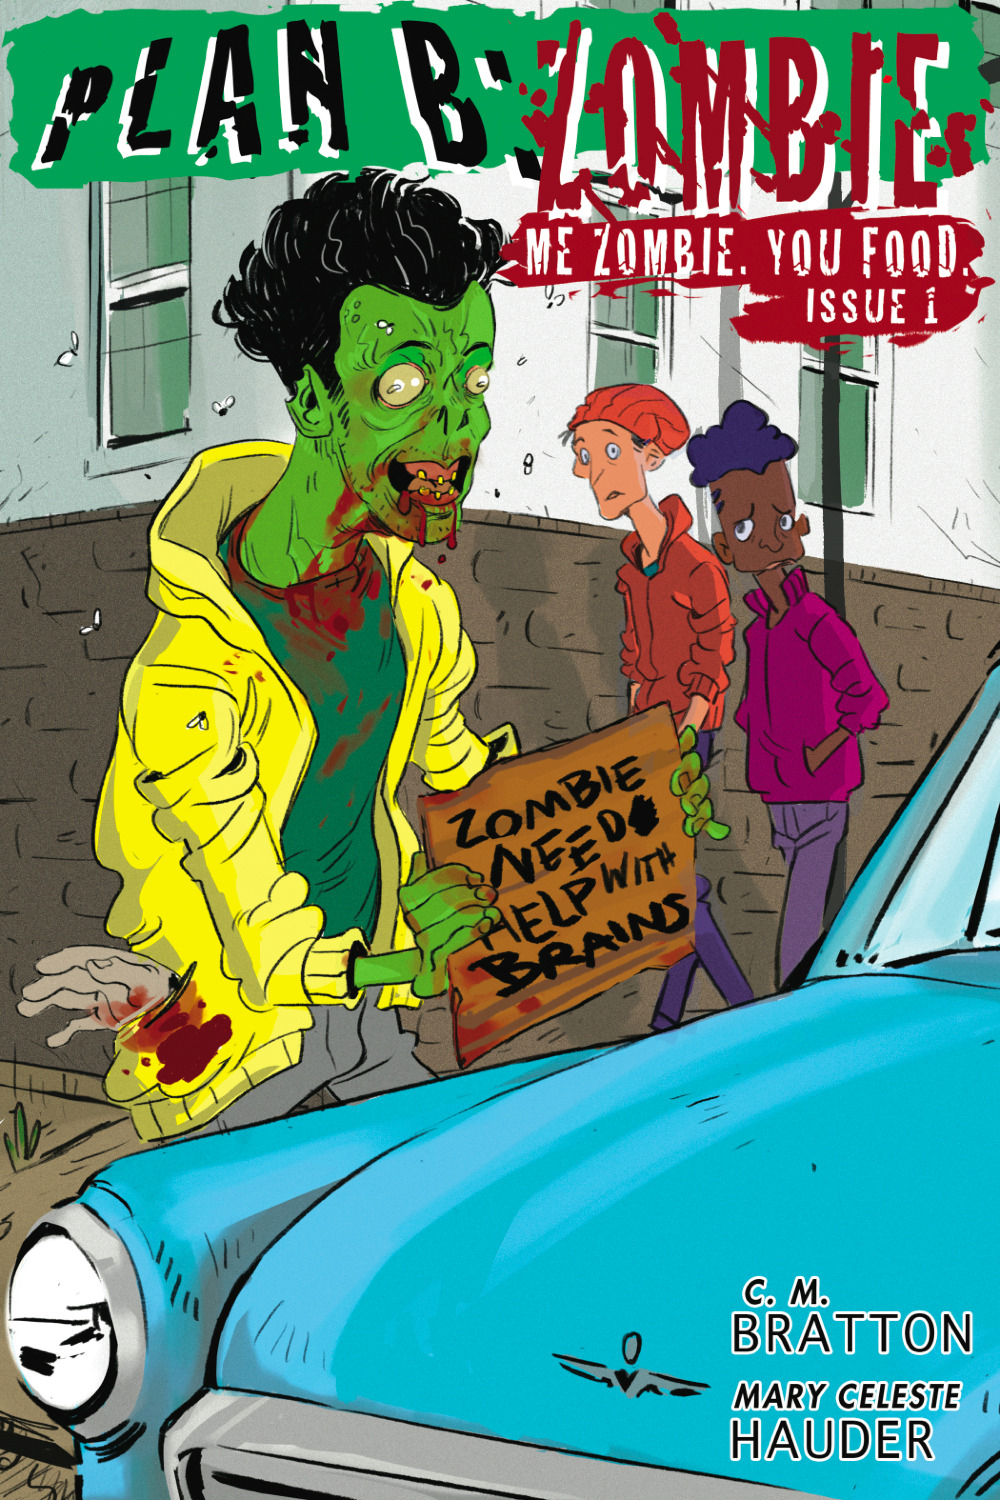 Plan B: Zombie Issue #1 Me Zombie, You Food